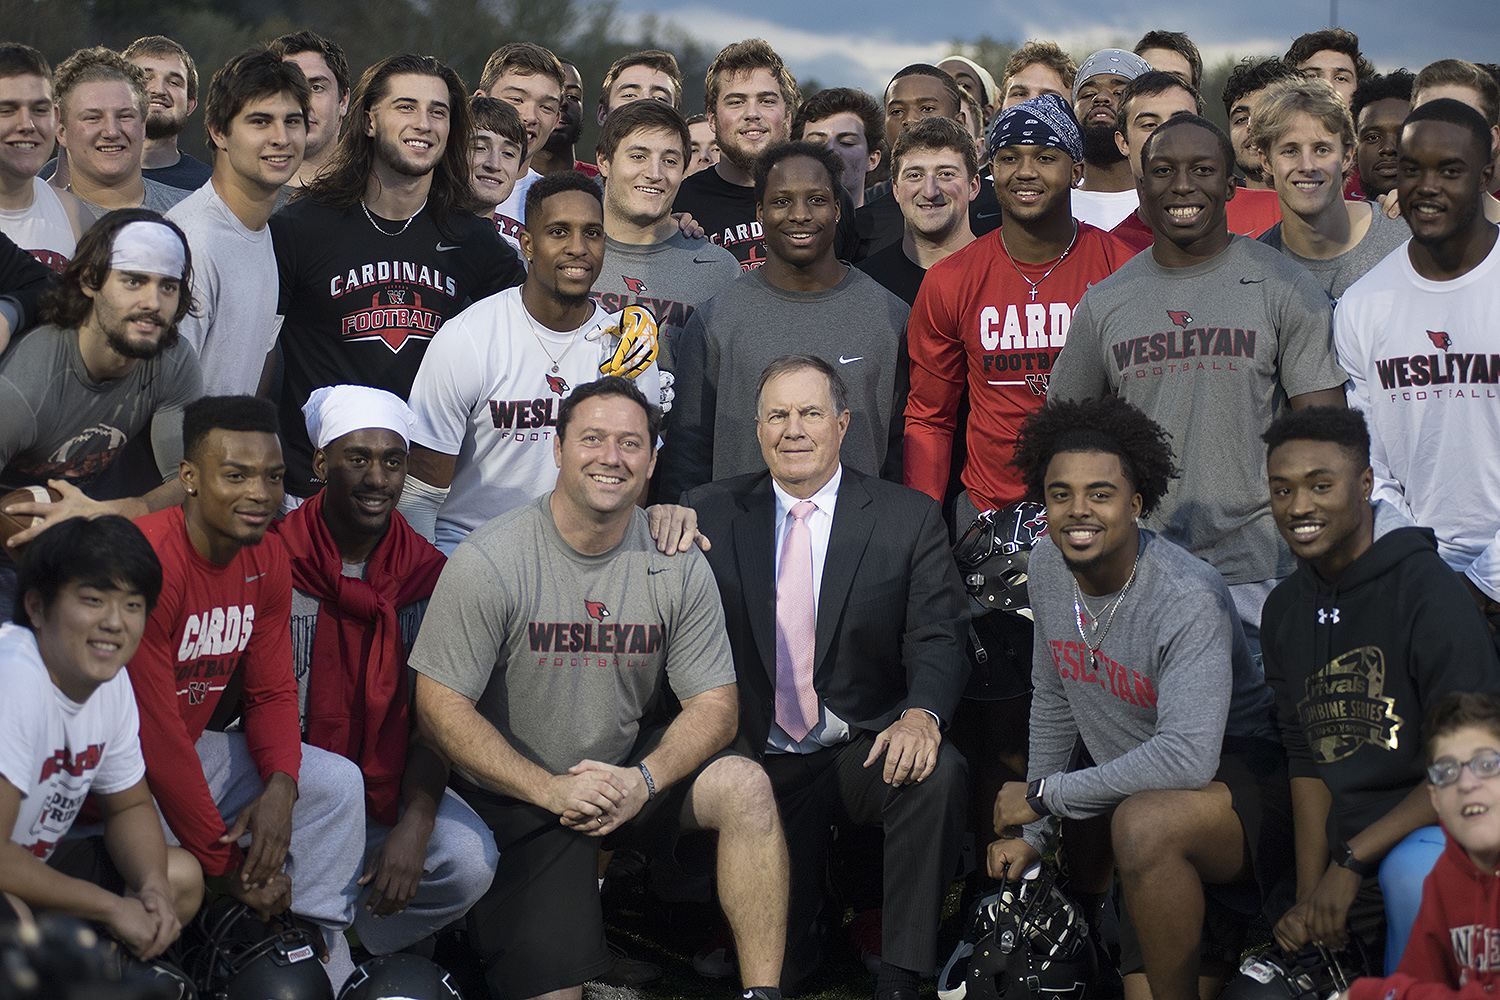 Belichick posed for photos with Head Coach Dan DiCenzo and the Wesleyan football team.